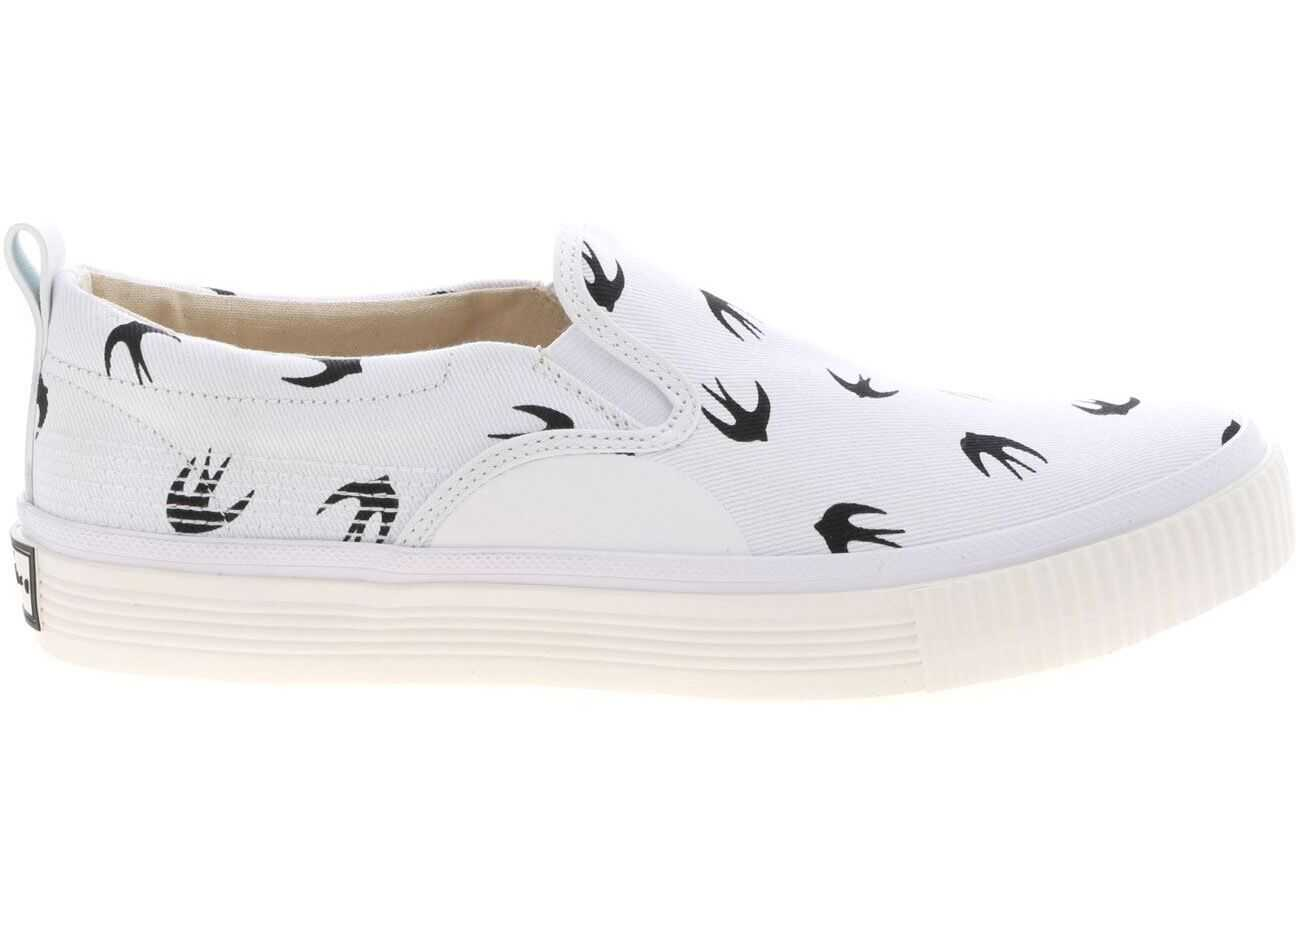 MCQ Alexander McQueen Slip-On In White With Swallow Print 494592 R2558 9024 White imagine b-mall.ro